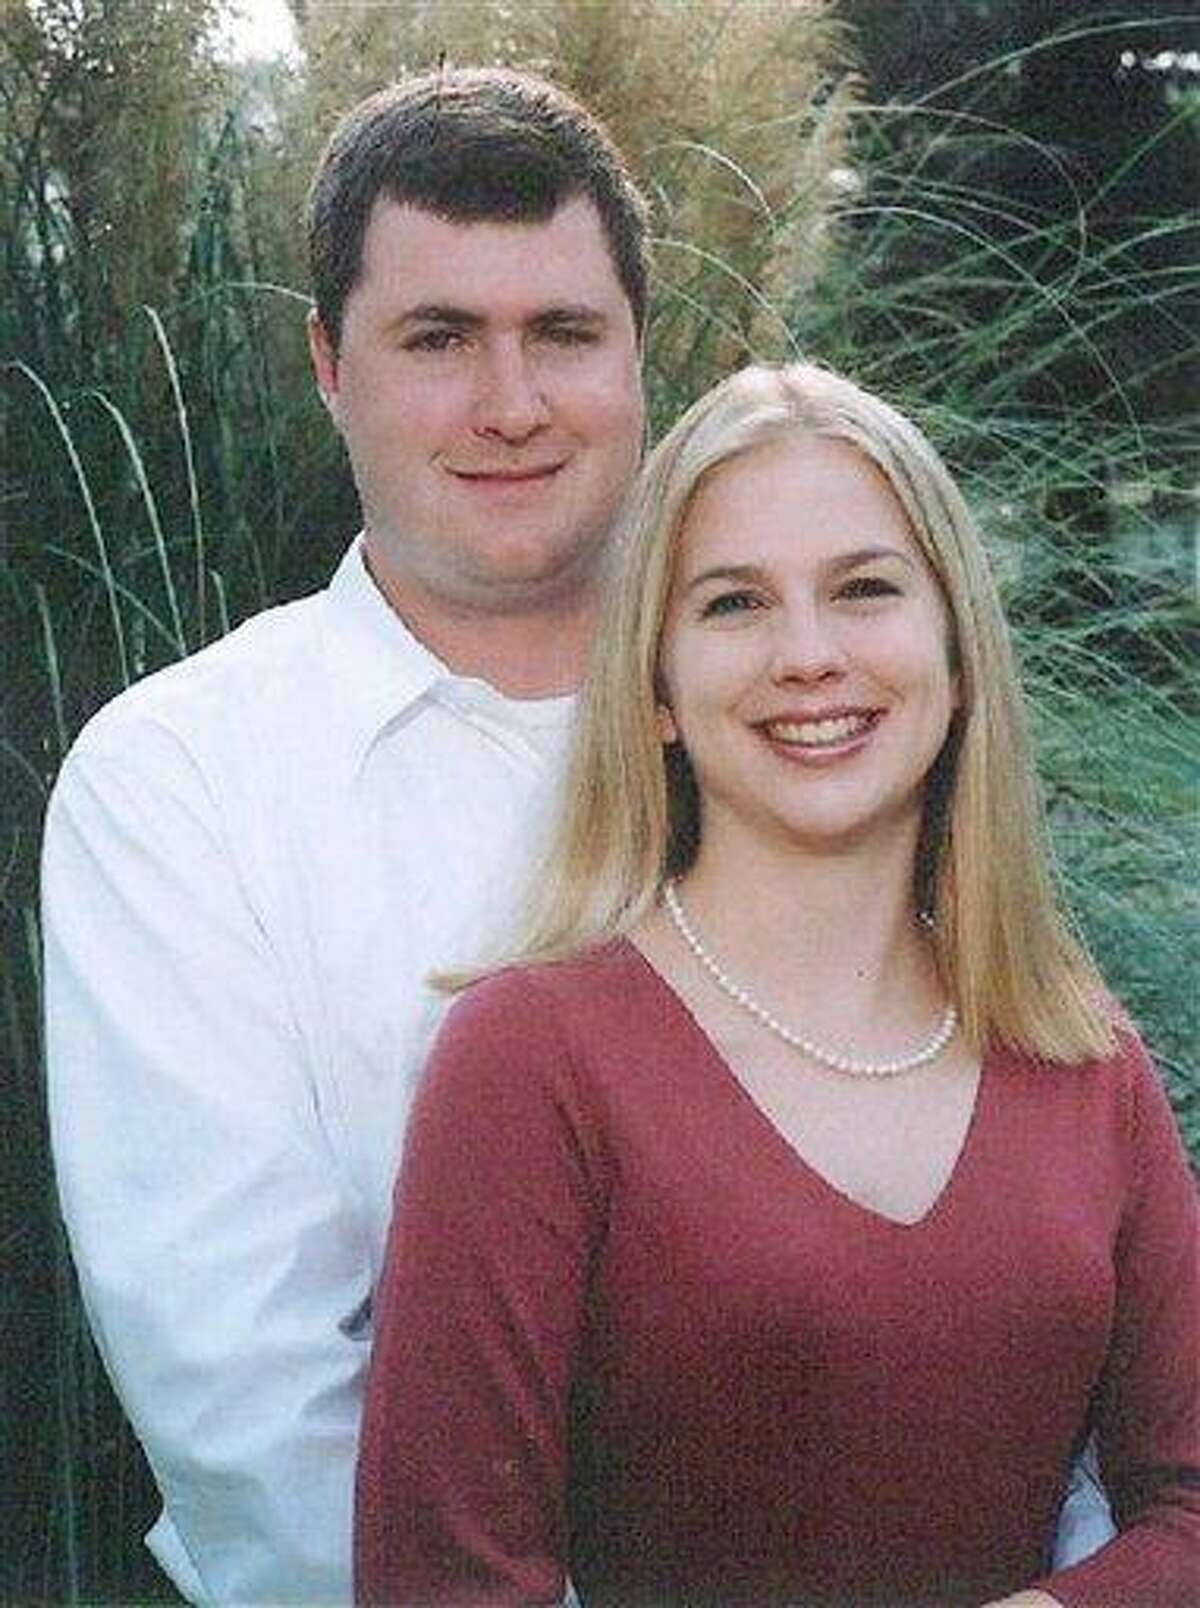 In this undated photo, Gabe Watson, left, and Tina Thomas, pose on their engagement. A judge will consider motions and begin jury selection Monday in Birmingham for the trial of Watson, who served prison time in Australia for the death of his bride during their honeymoon. She drowned during a scuba dive in Australia just days after her wedding in October 2003. Associated Press